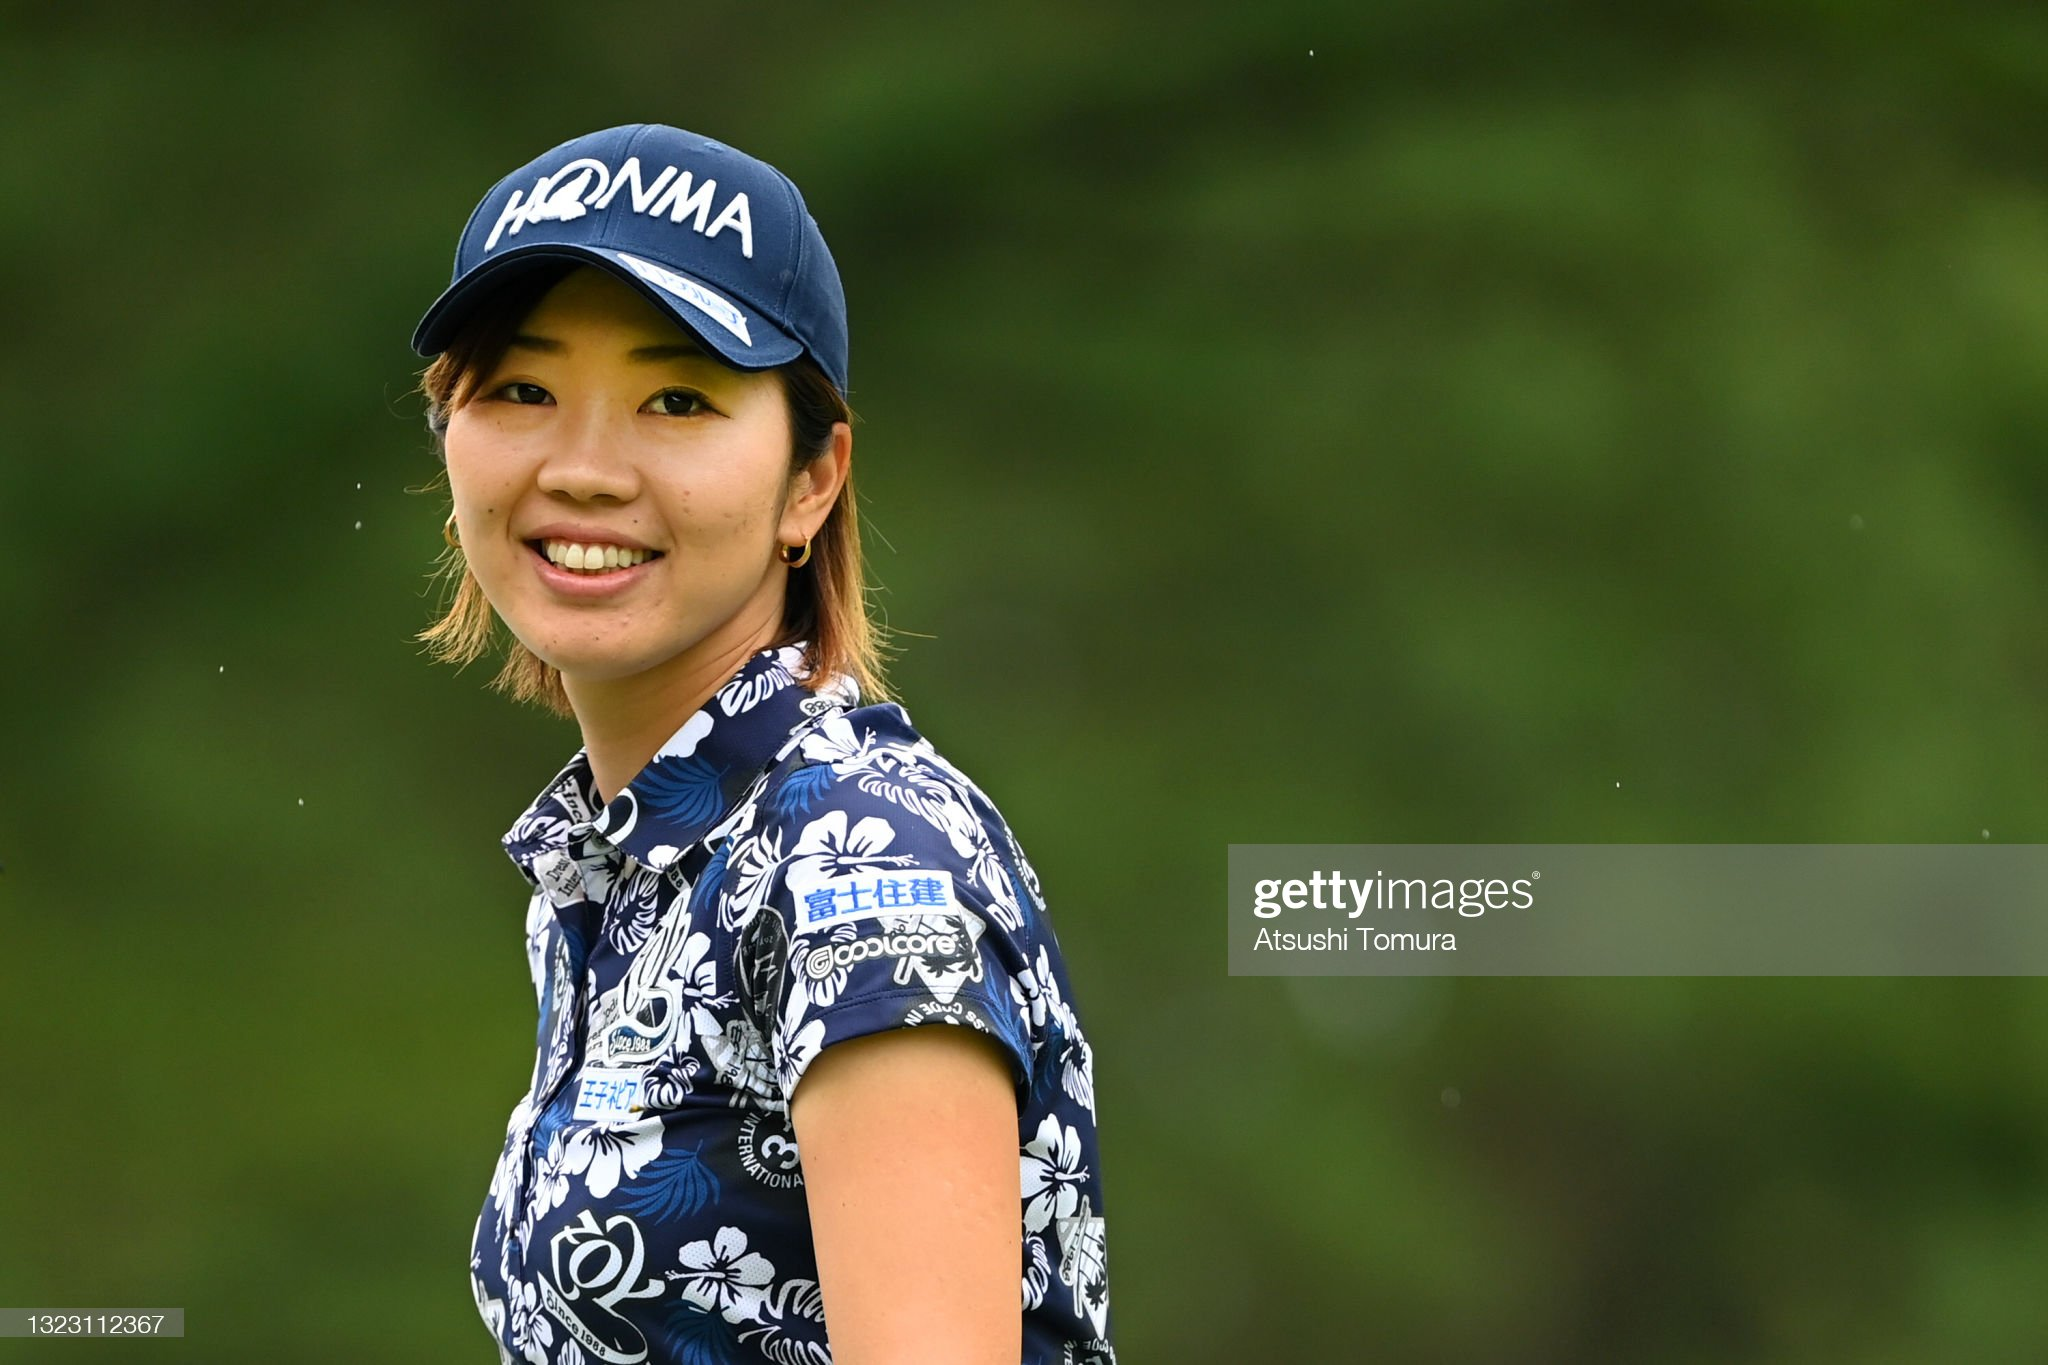 https://media.gettyimages.com/photos/rumi-yoshiba-of-japan-smiles-on-the-2nd-hole-during-the-third-round-picture-id1323112367?s=2048x2048